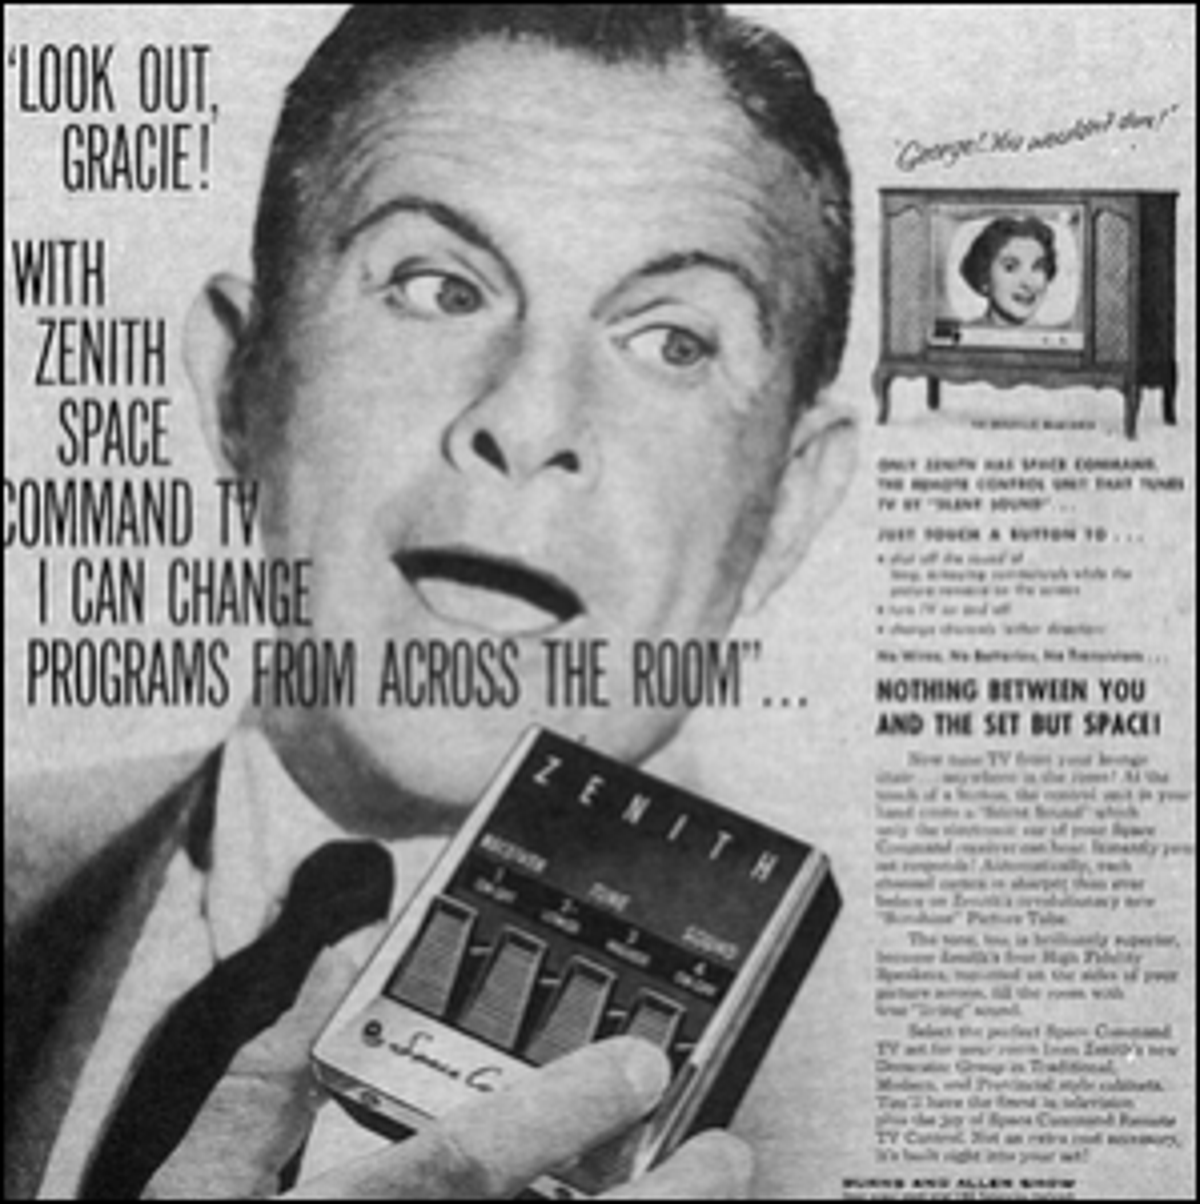 An old Zenith ad depicting the first wireless TV remote.